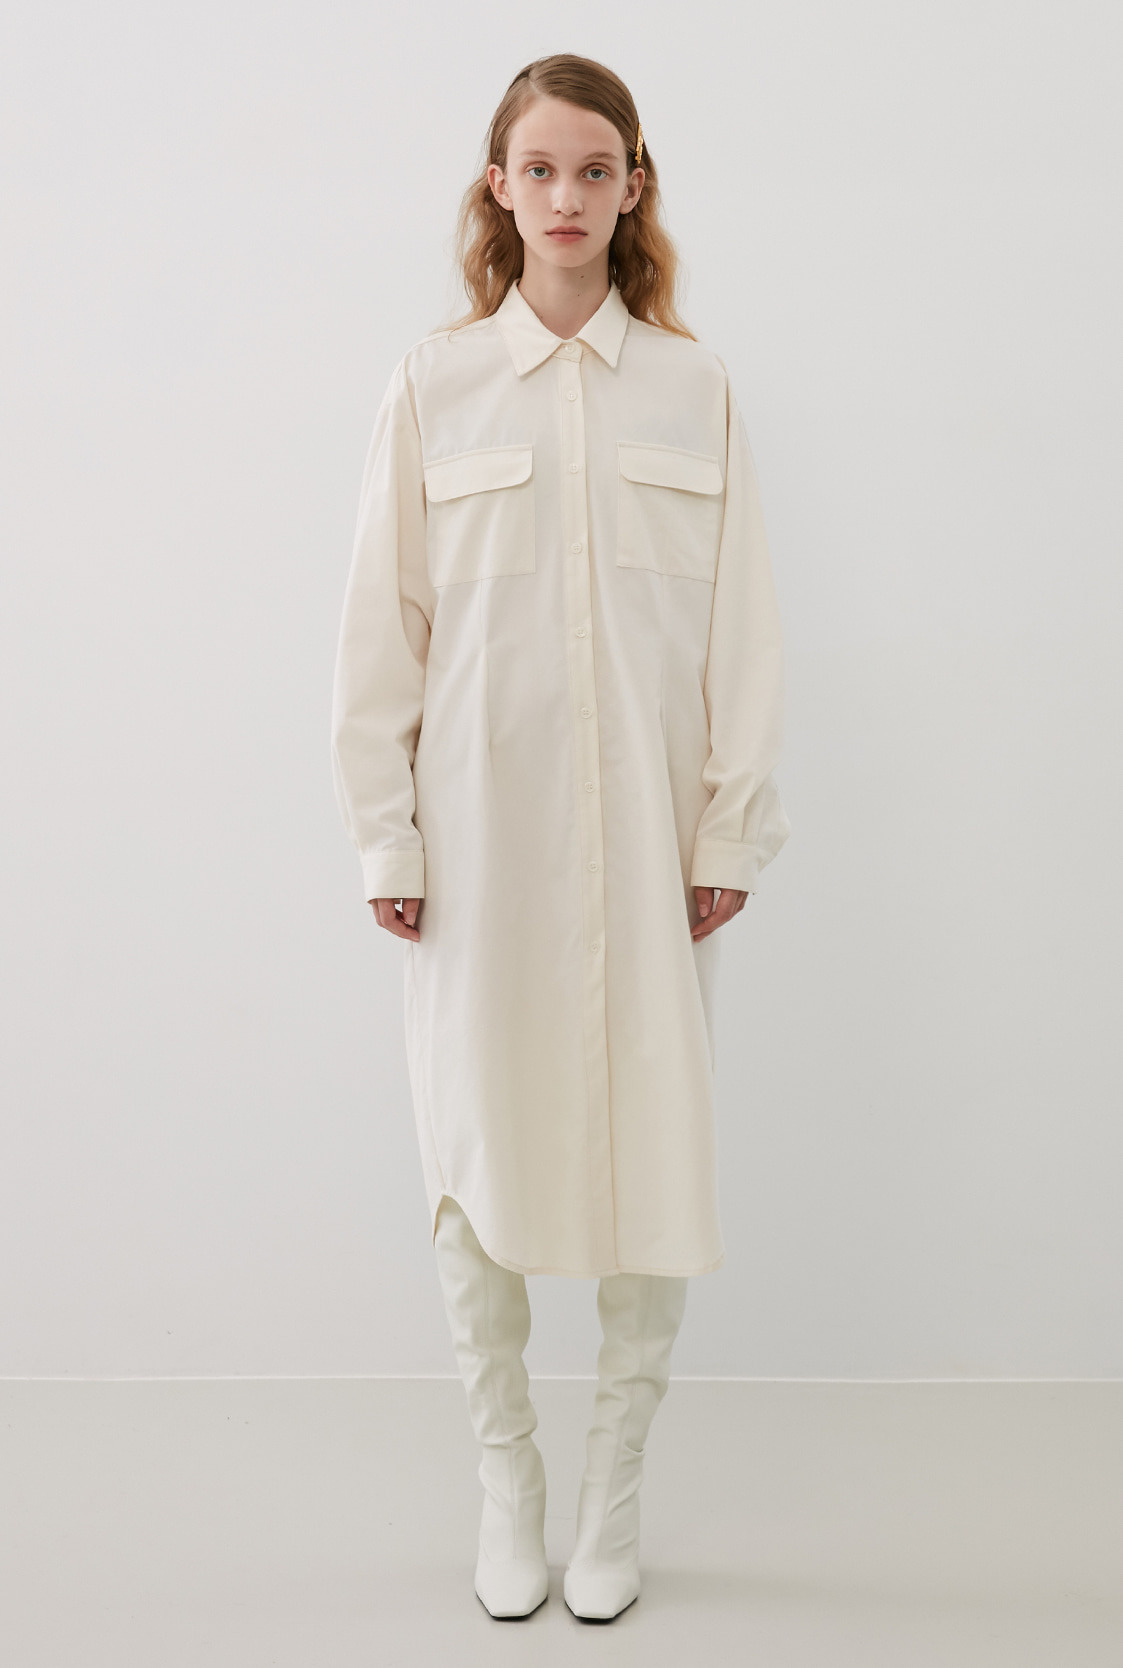 R POCKET SHIRT DRESS